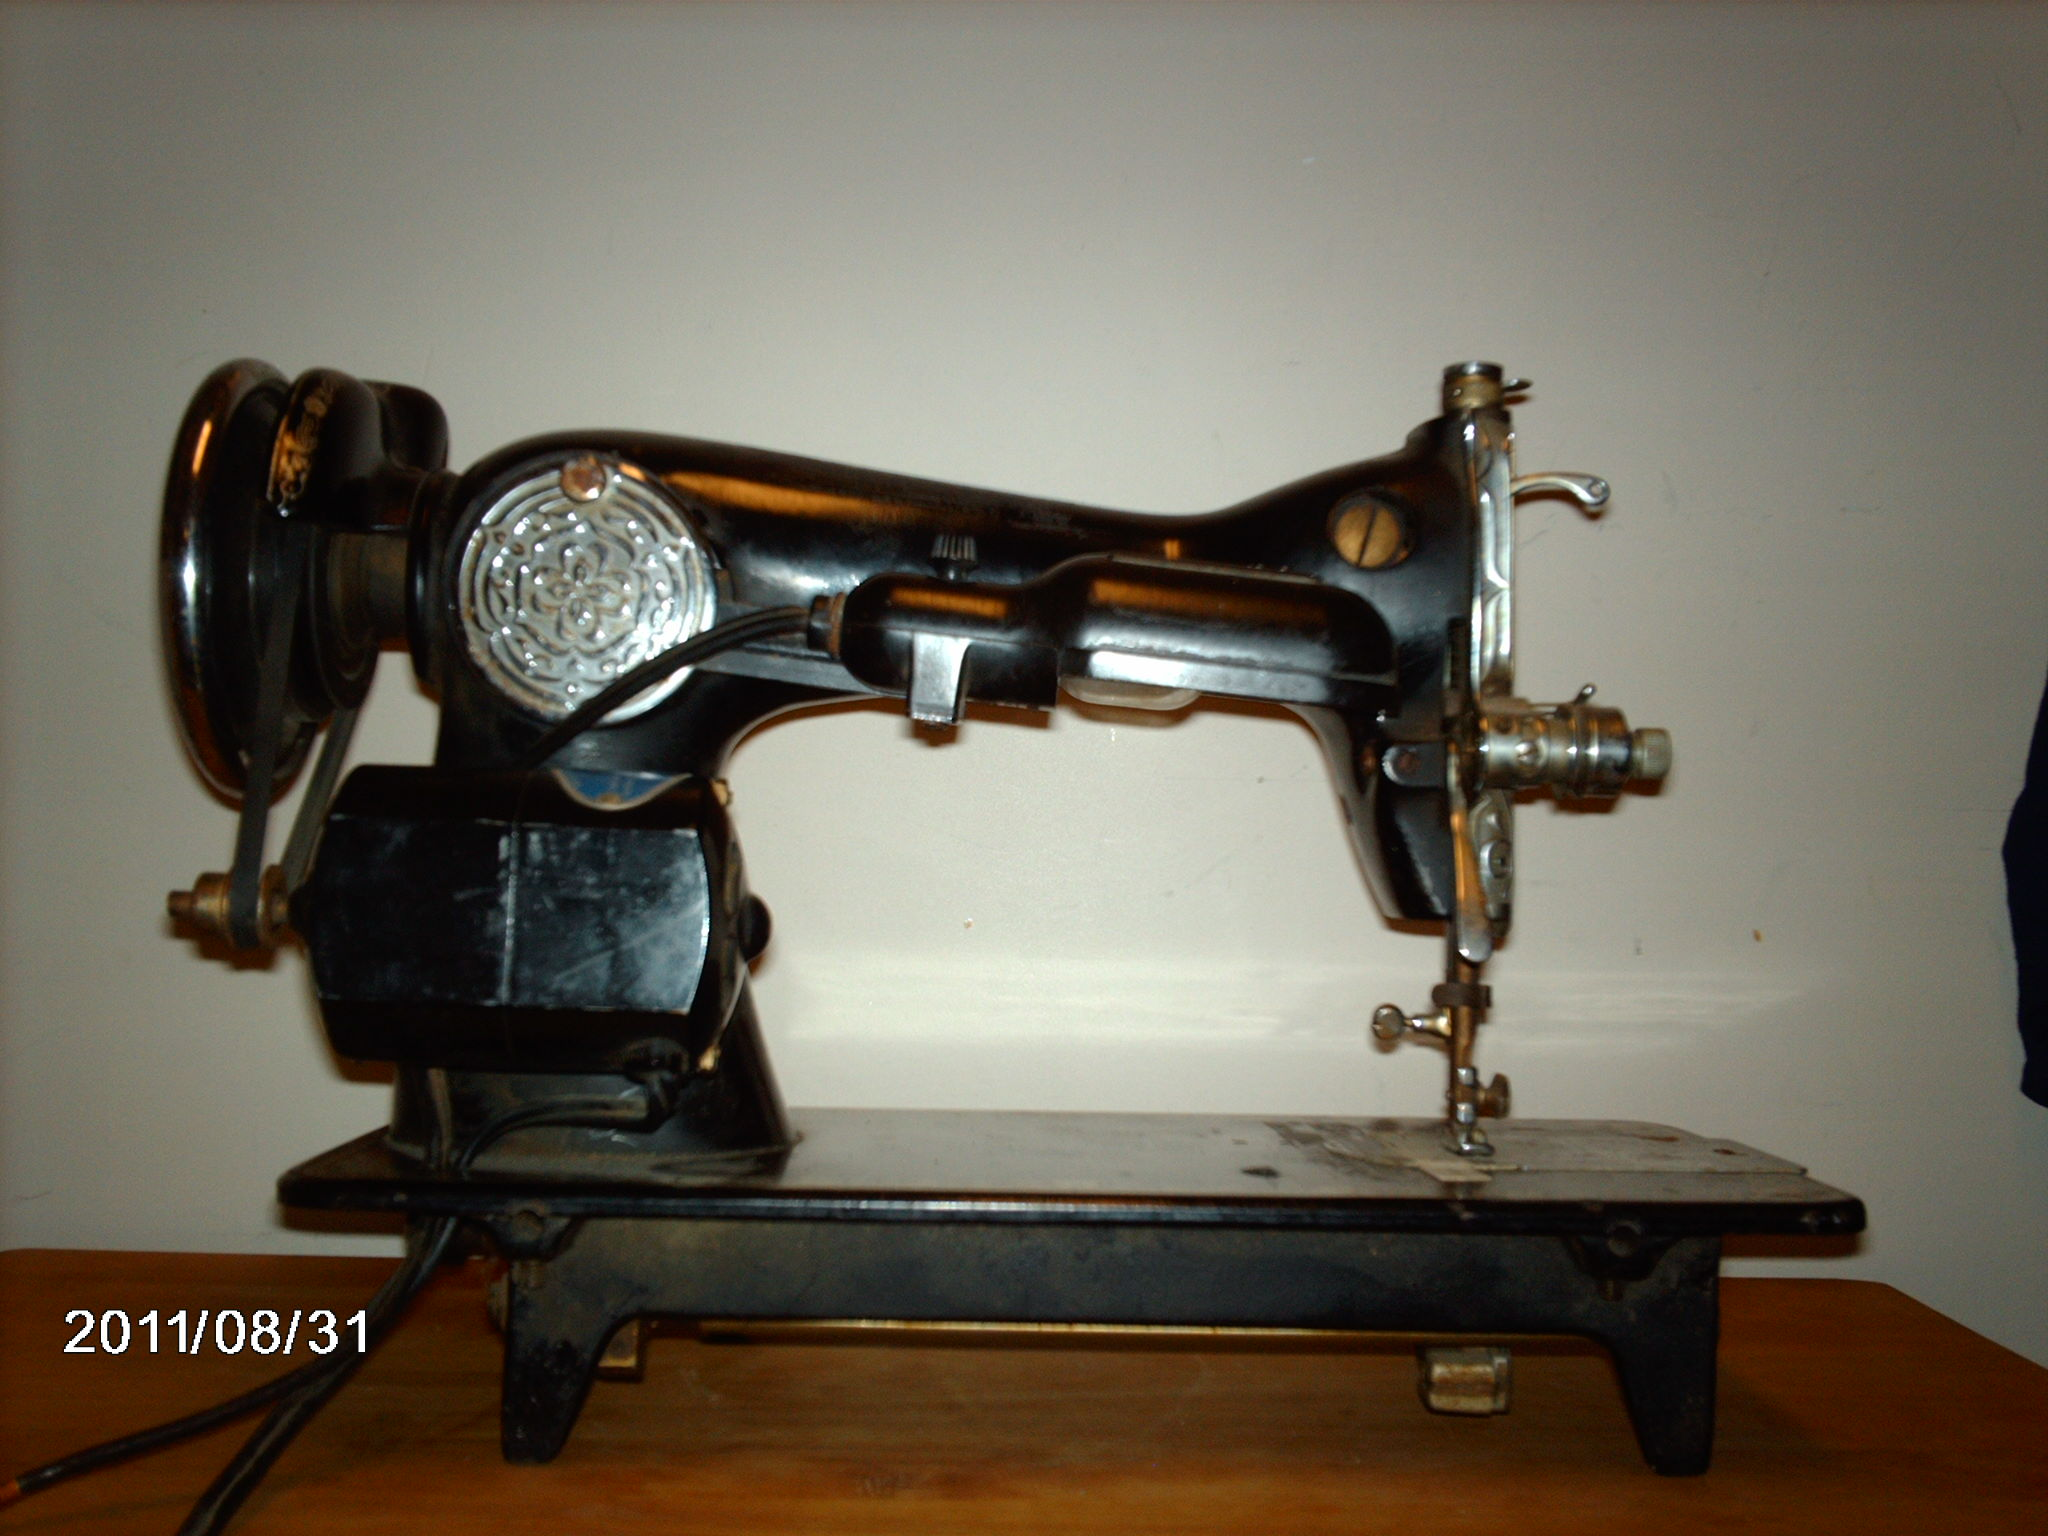 The Timeless Commercial Sewing Machine